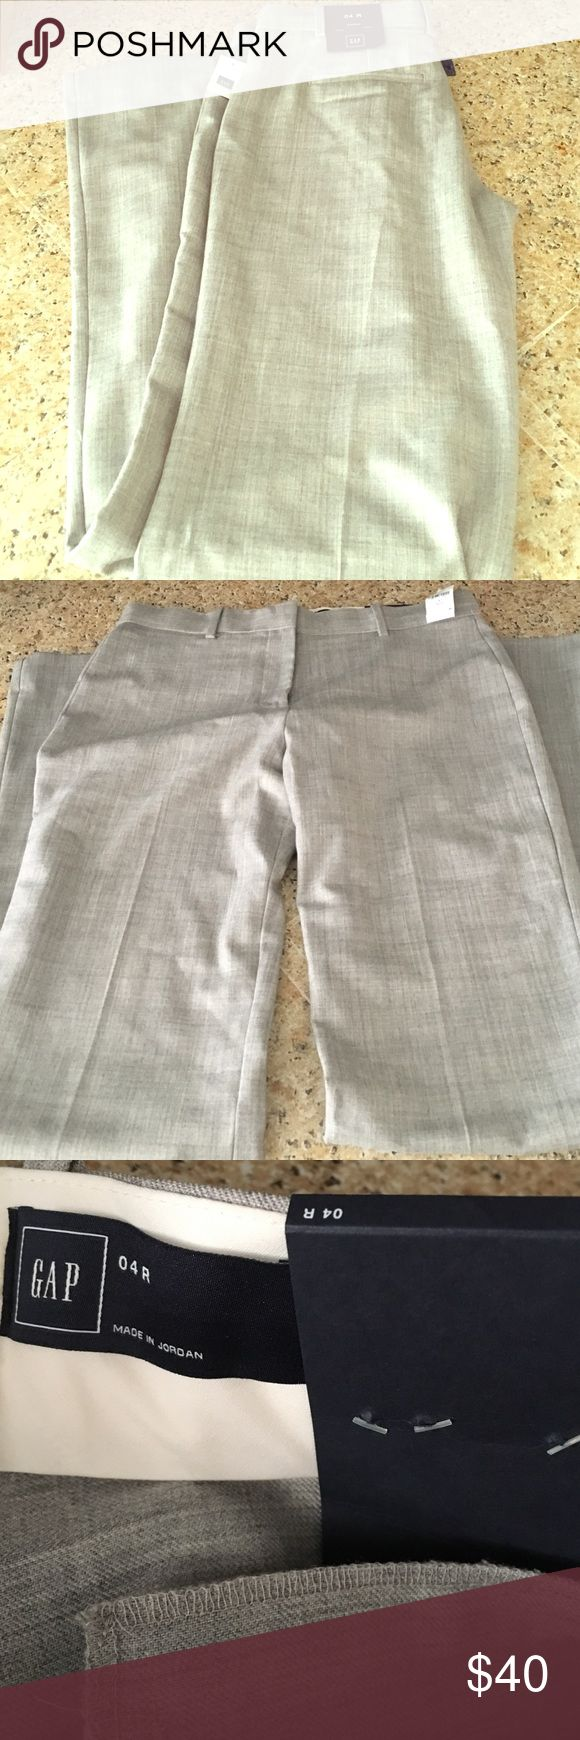 Brand new gap trouser pants Brand new cute stretchy pants GAP Pants Trousers